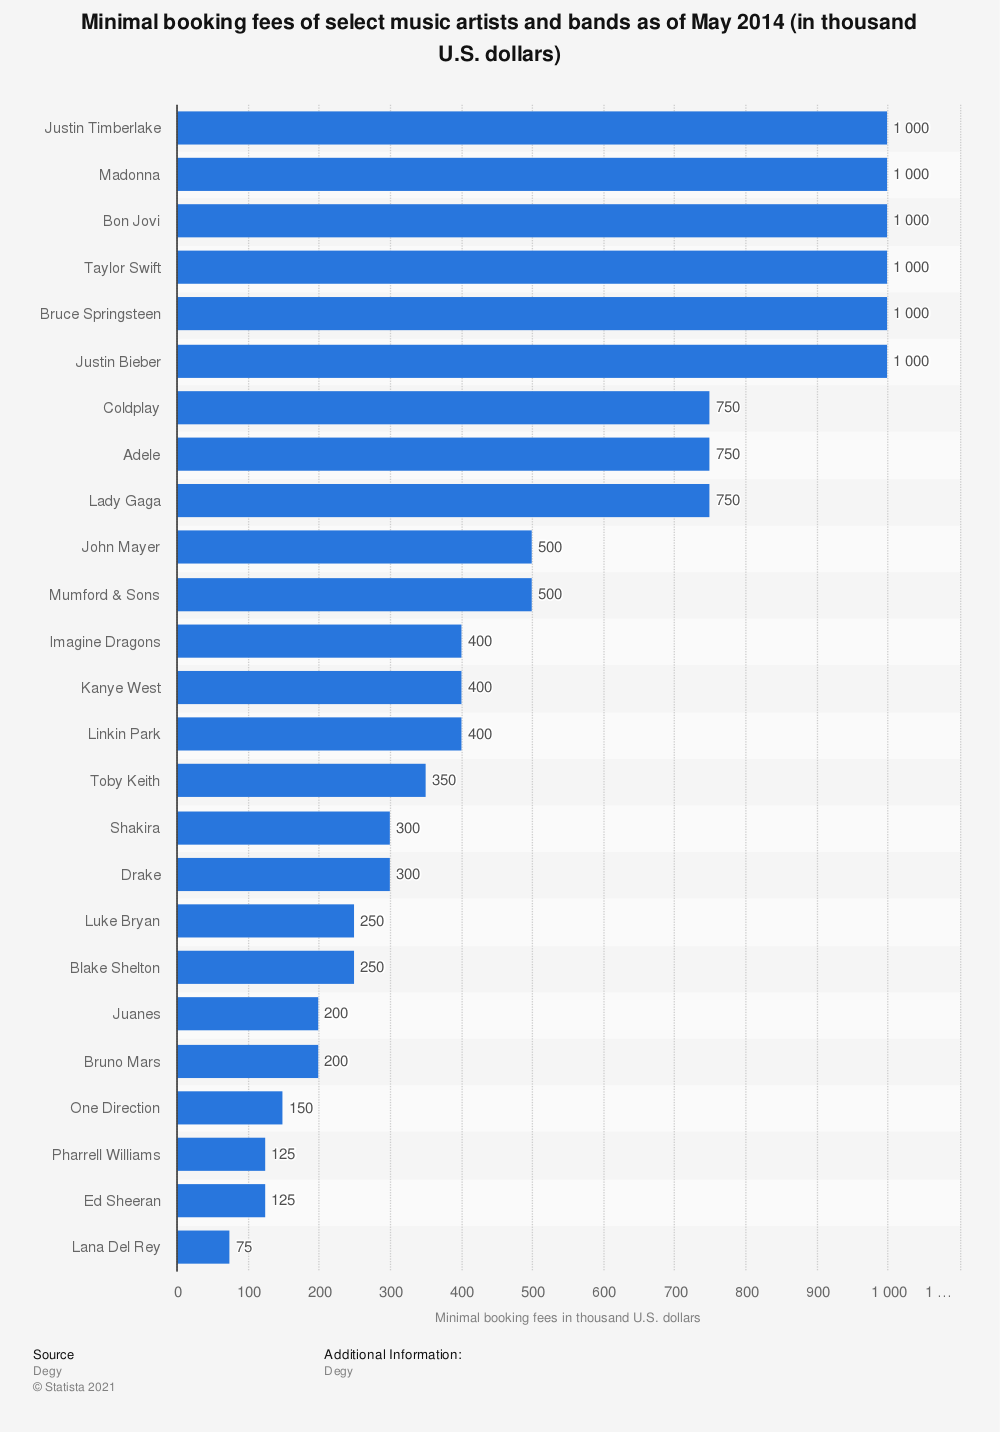 Statistic: Minimal booking fees of select music artists and bands as of May 2014 (in thousand U.S. dollars) | Statista